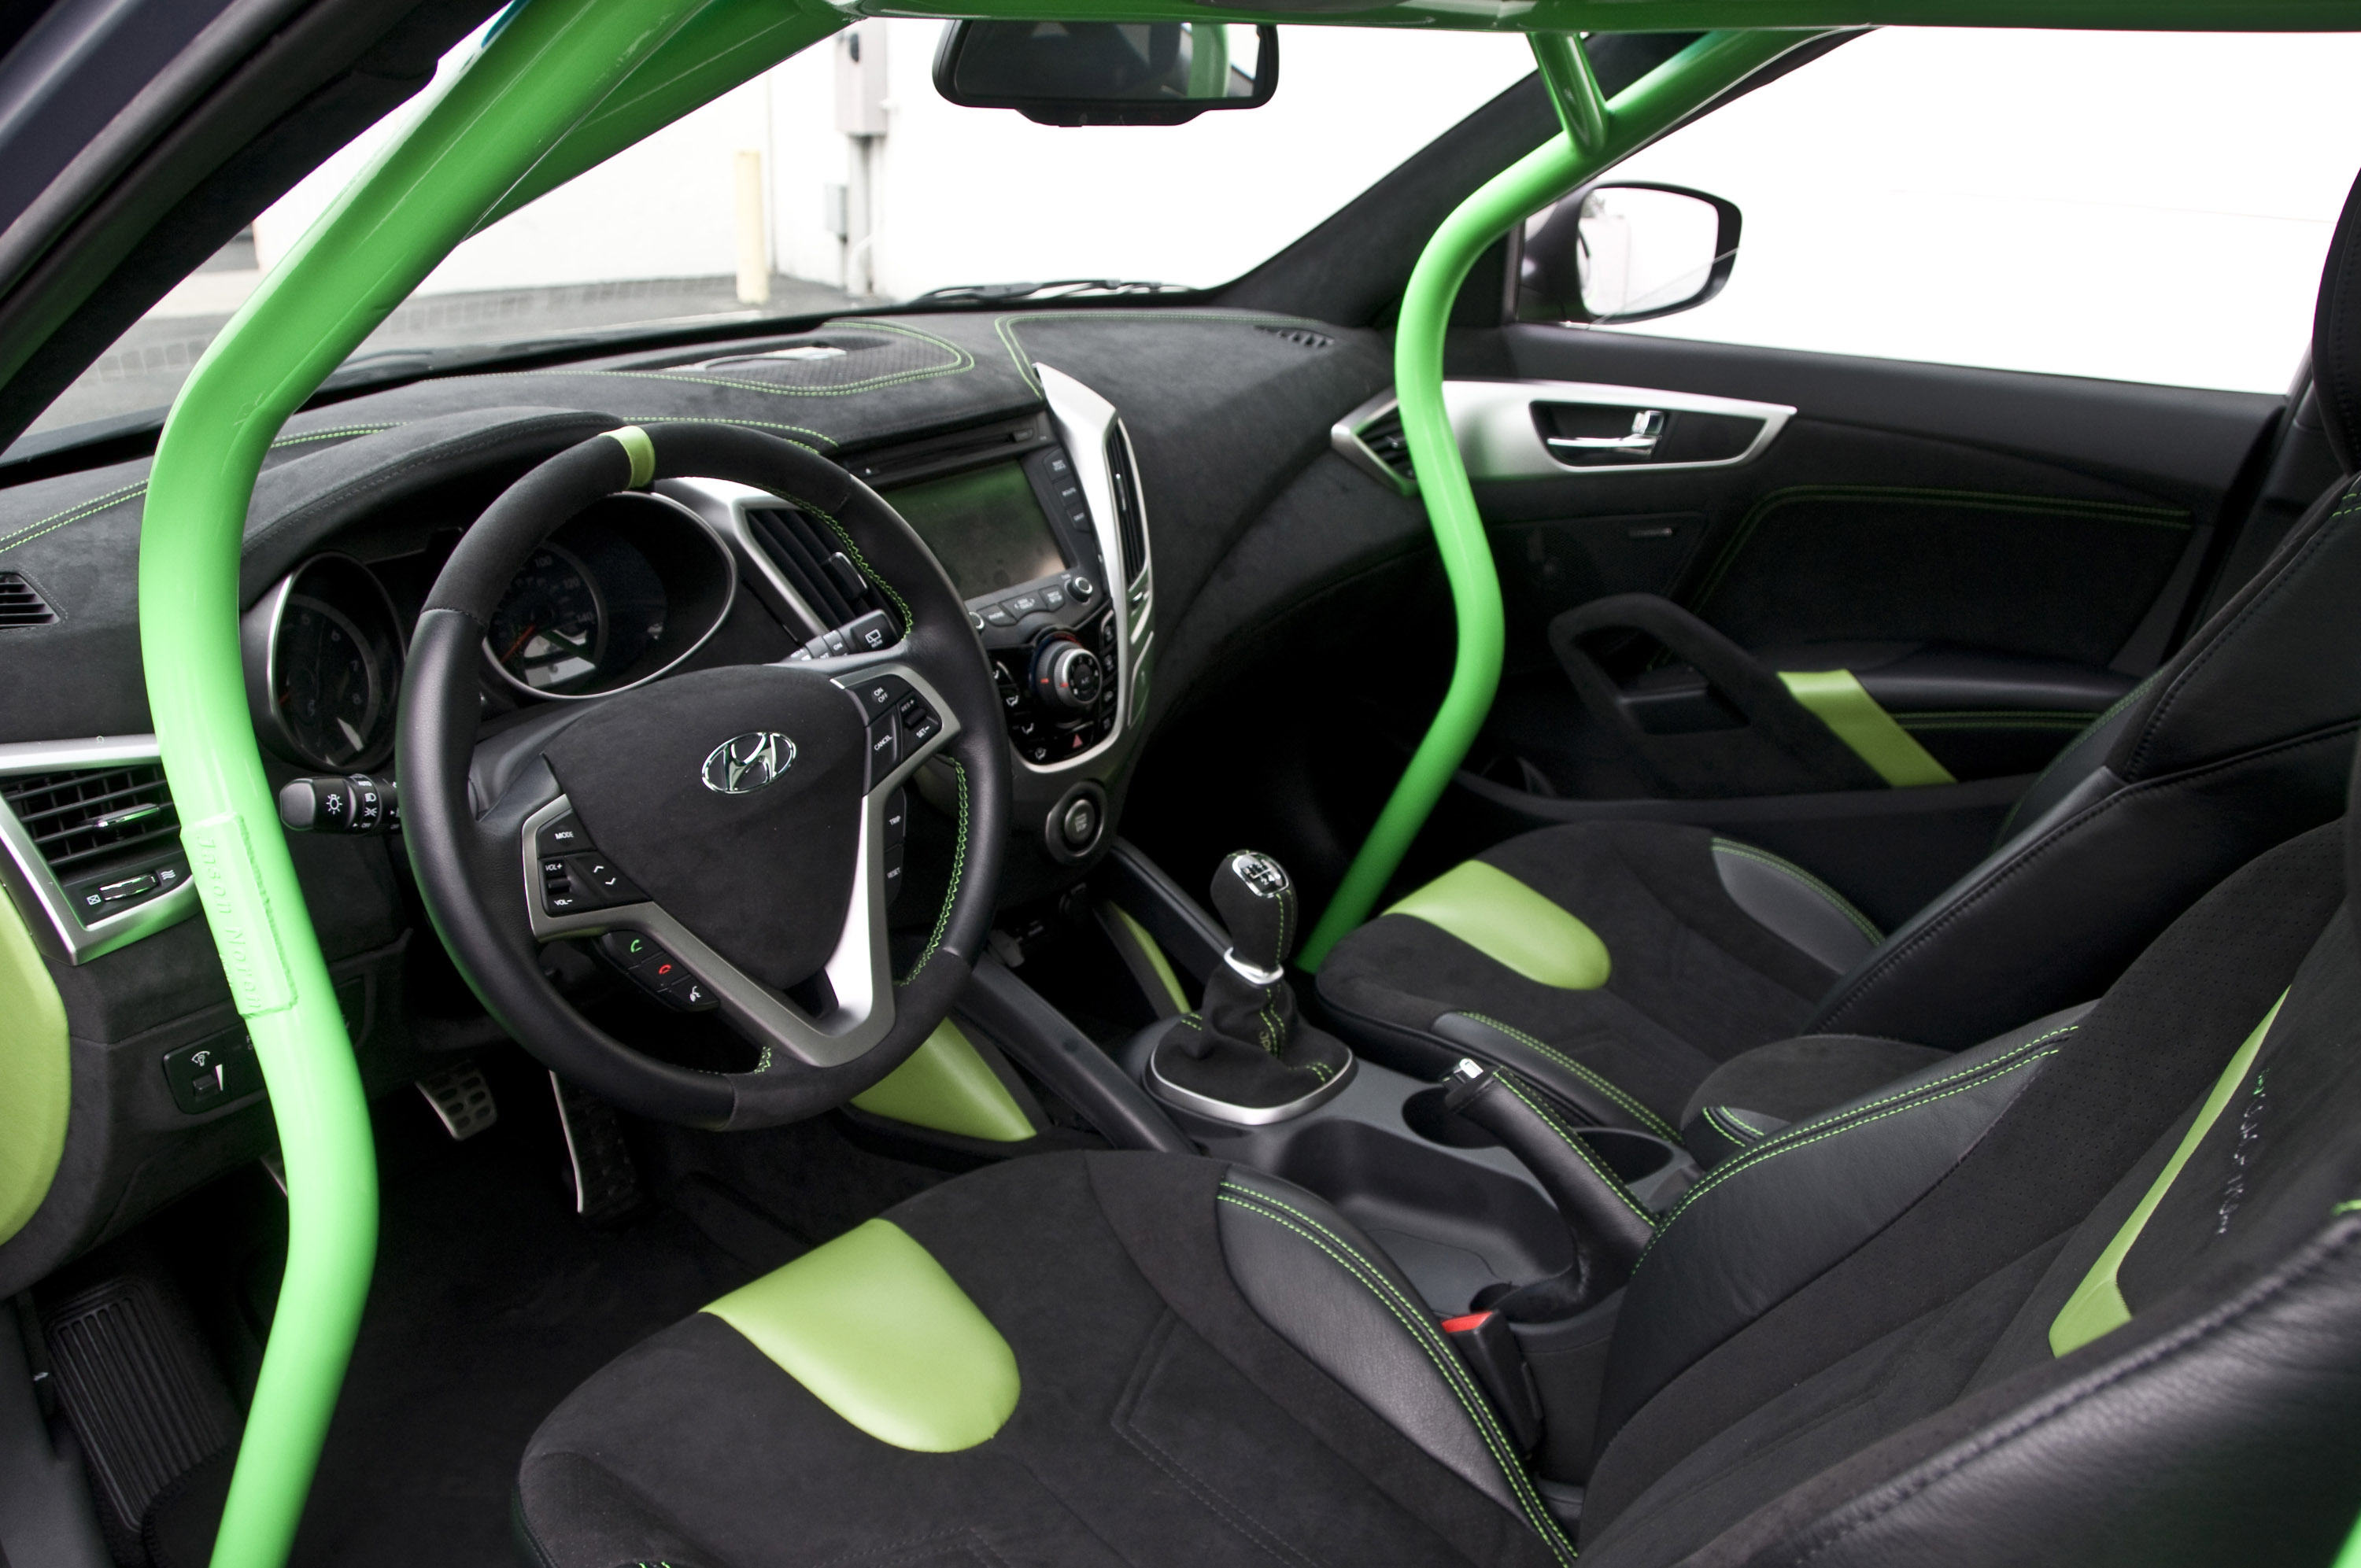 2011 performance ark hyundai veloster tuning interior wallpaper 3000x1993 84391 wallpaperup. Black Bedroom Furniture Sets. Home Design Ideas